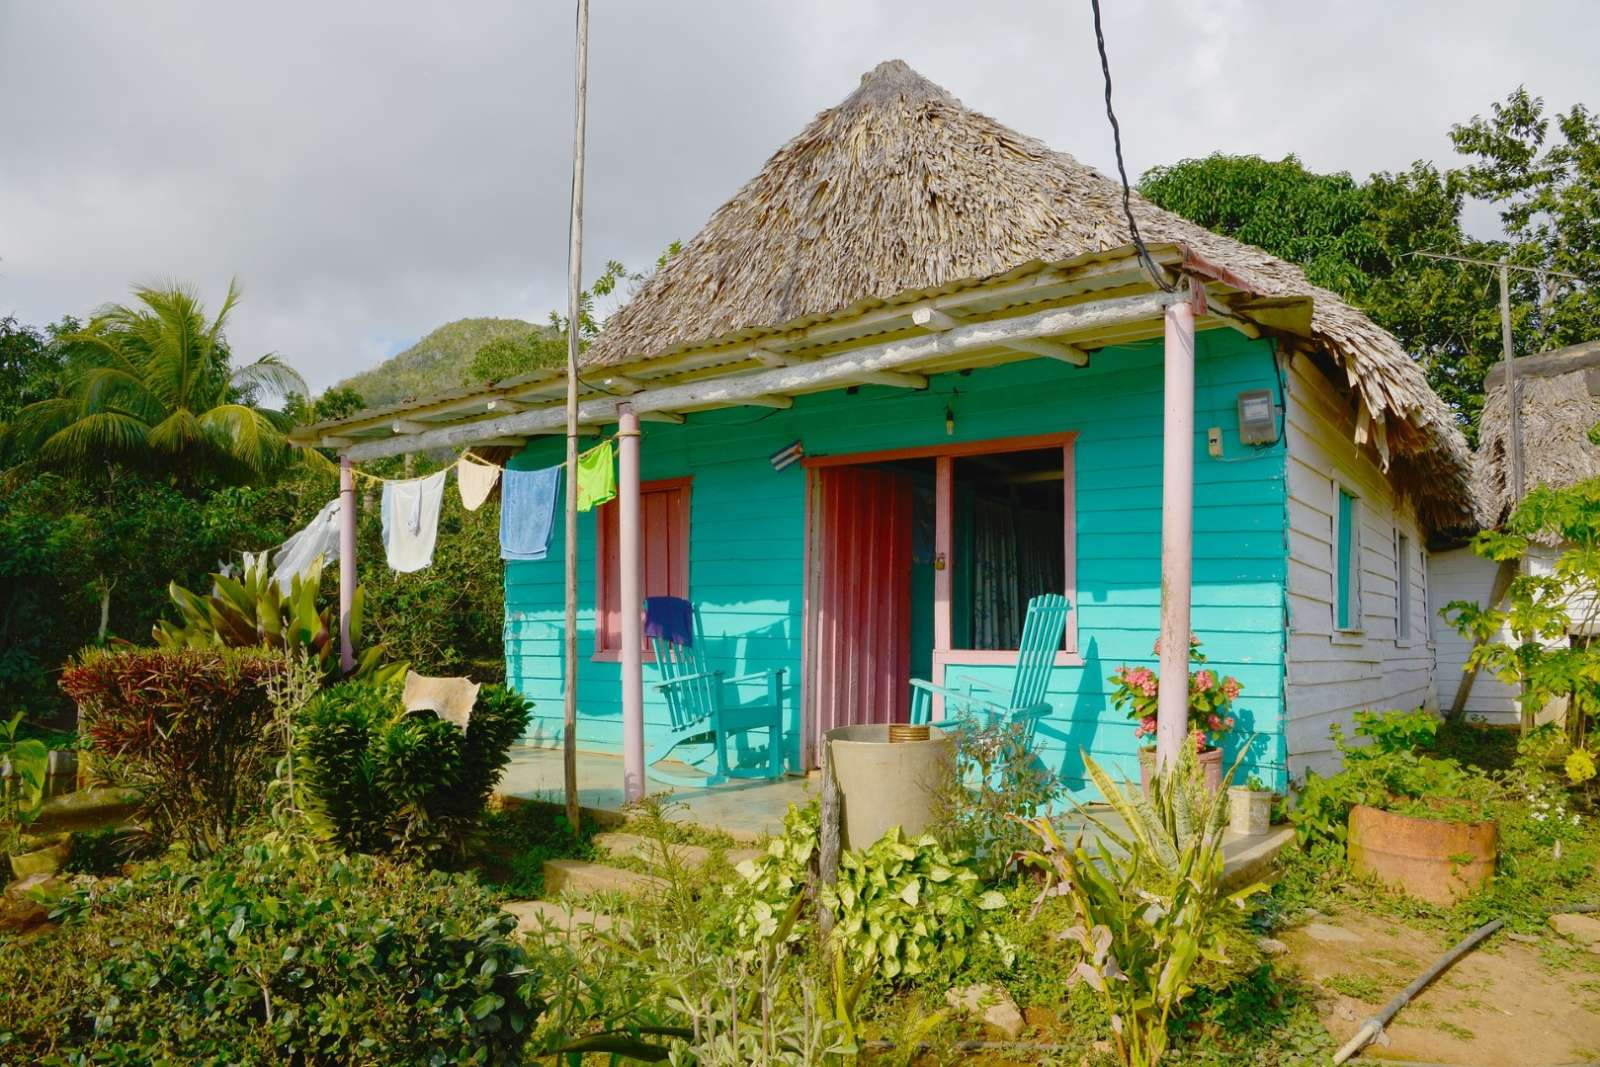 Small farmhouse in the Vinales countryside, Cuba